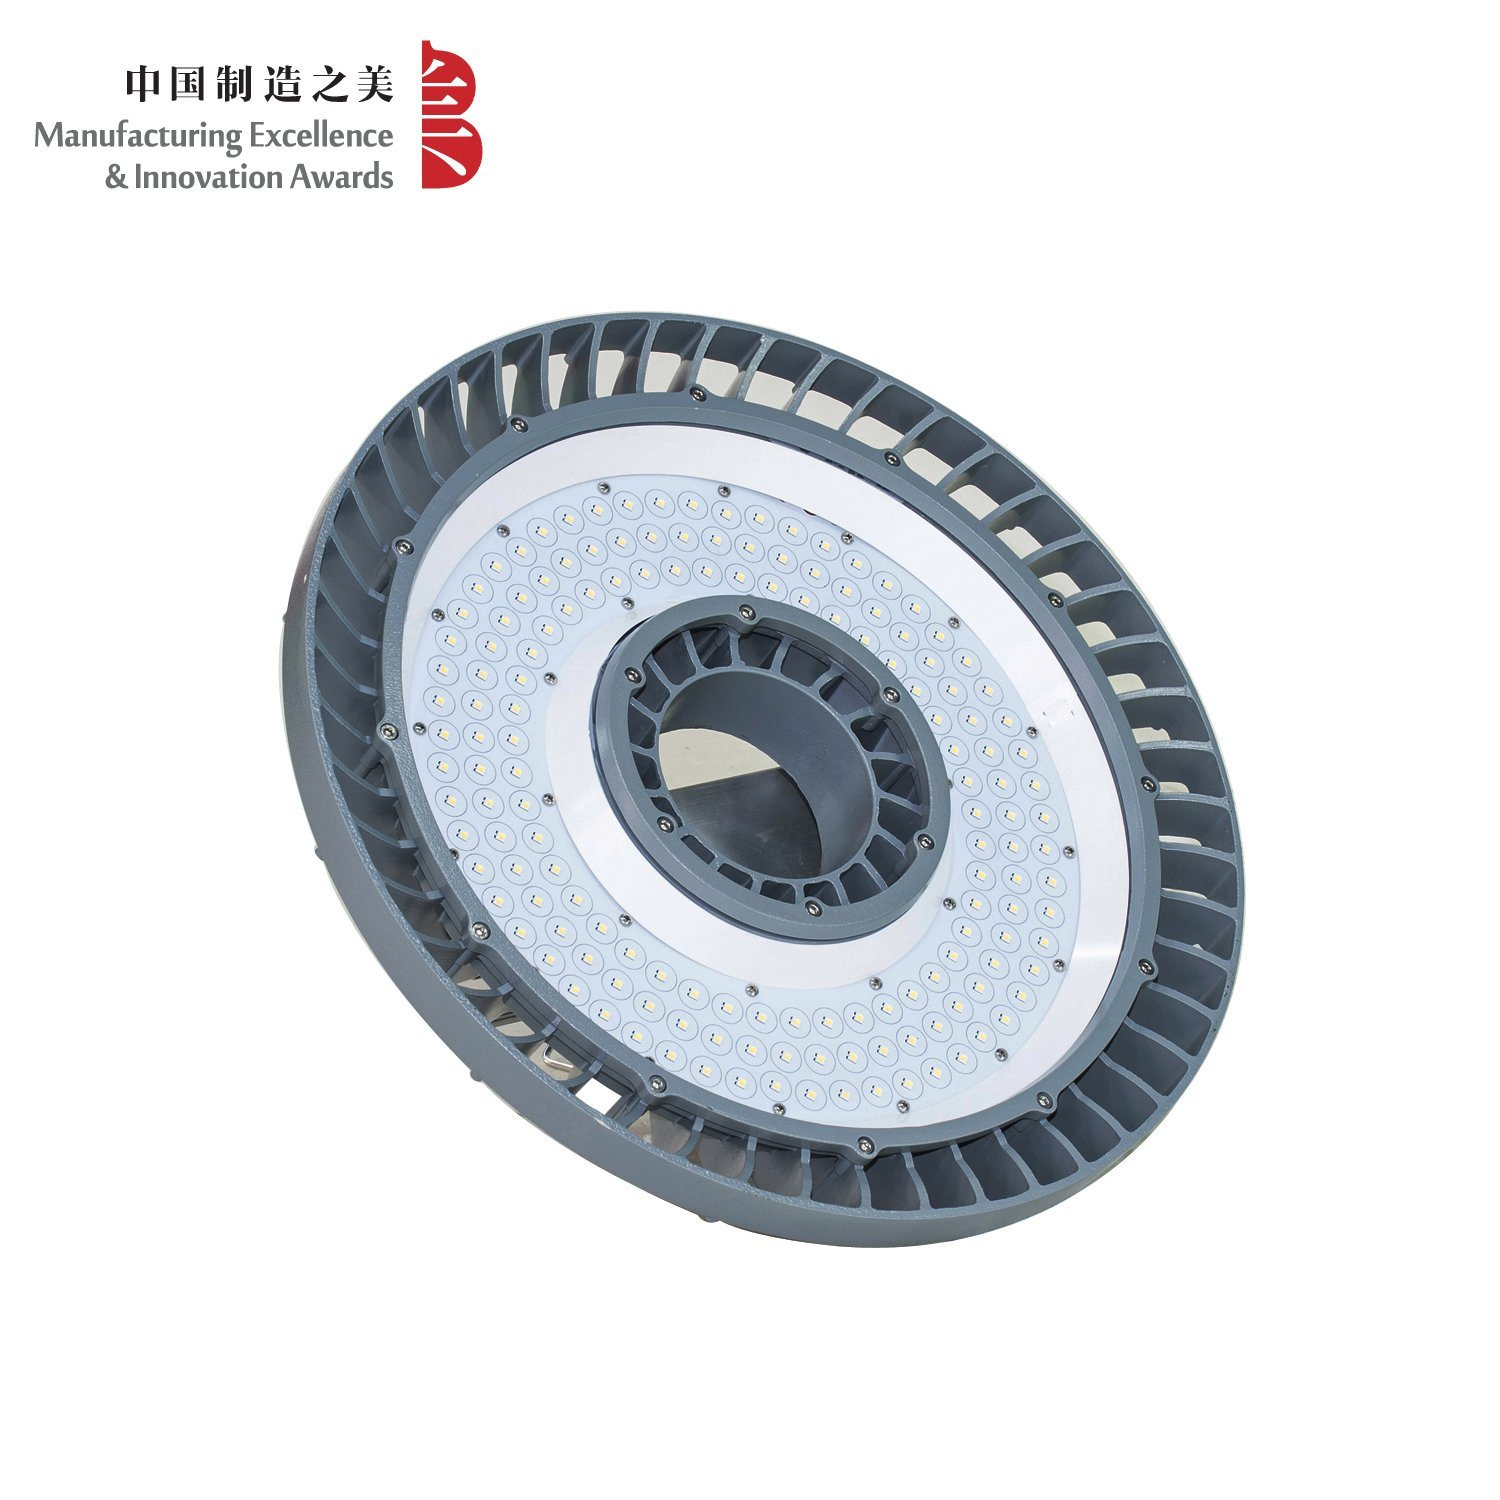 180W Outdoor LED High Bay Light with on/off Switch (BFZ 220/180 55 Y D)